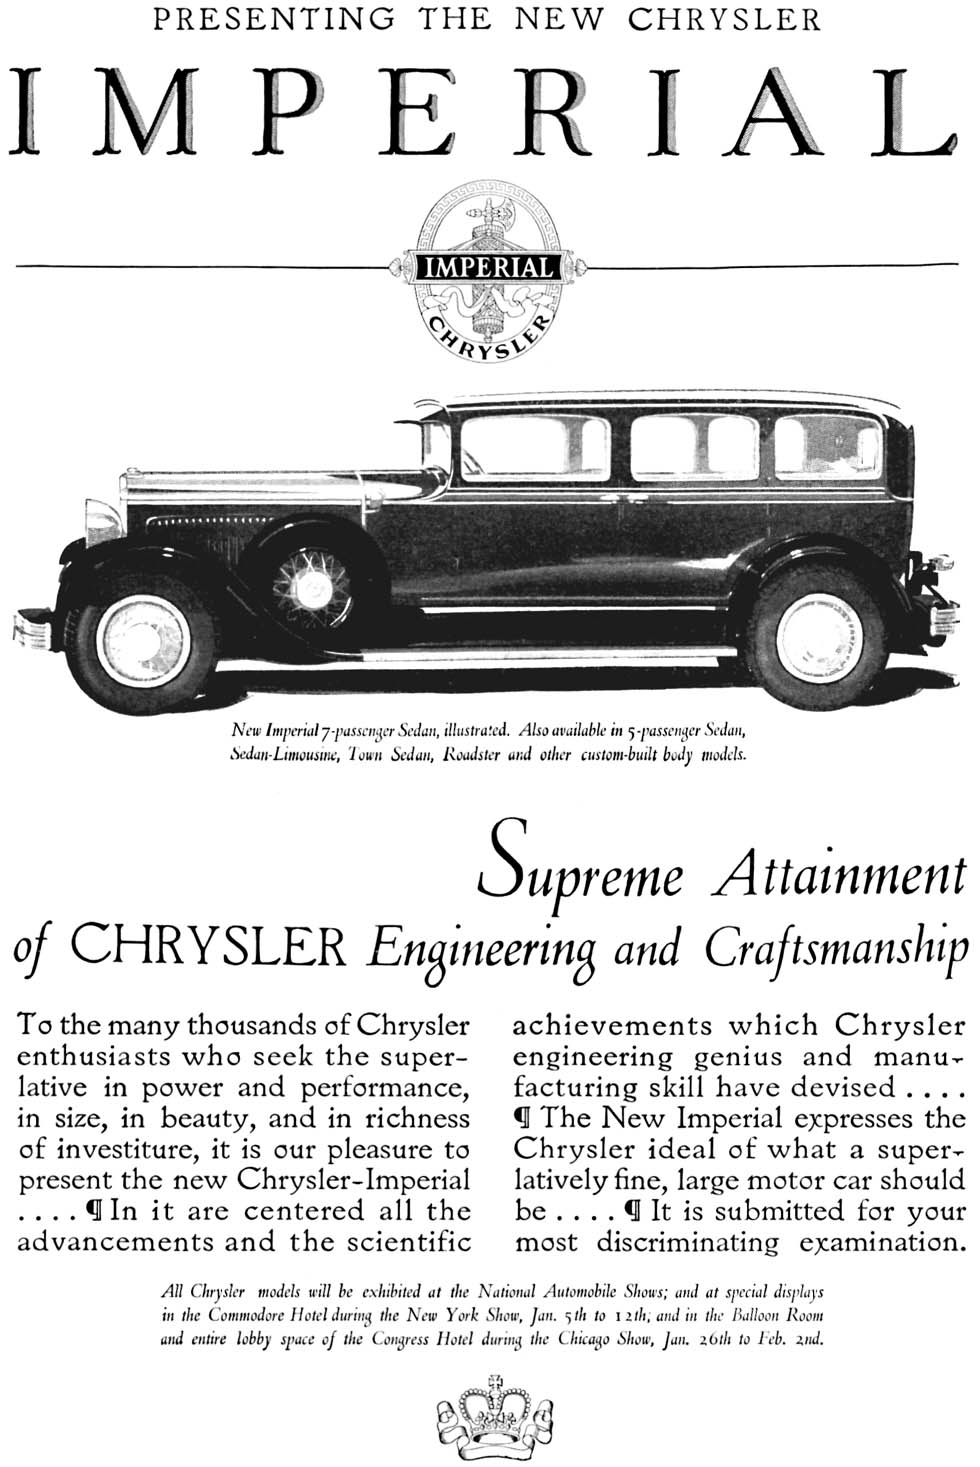 American Automobile Advertising published by Chrysler in 1929